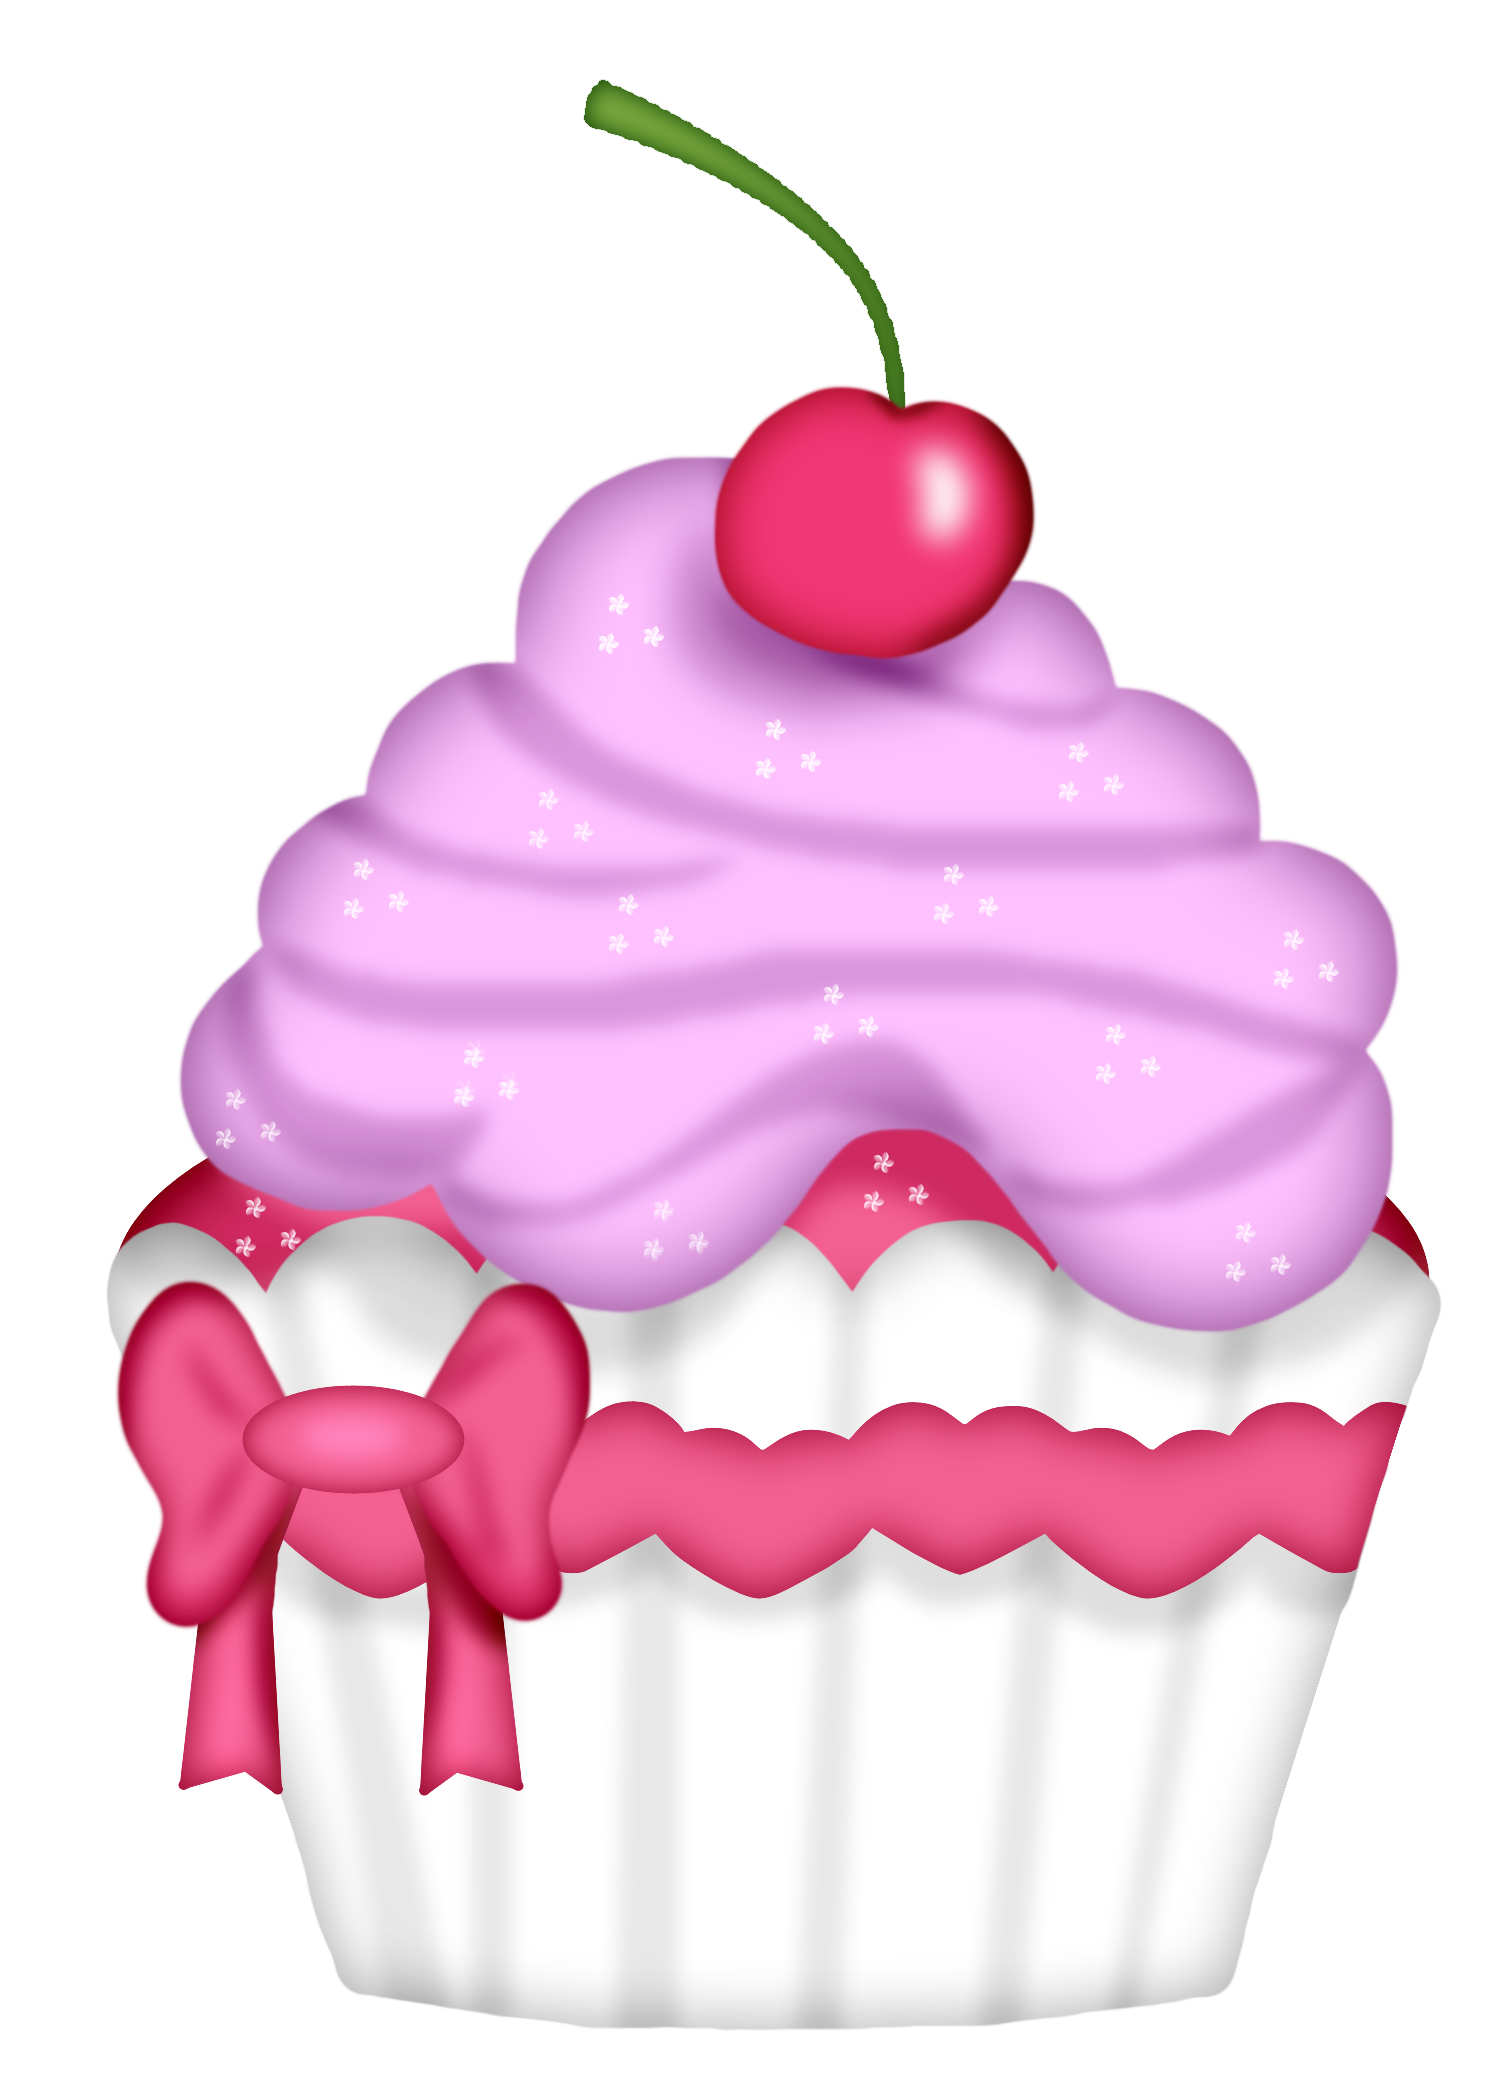 a f c. Muffins clipart easy cupcake